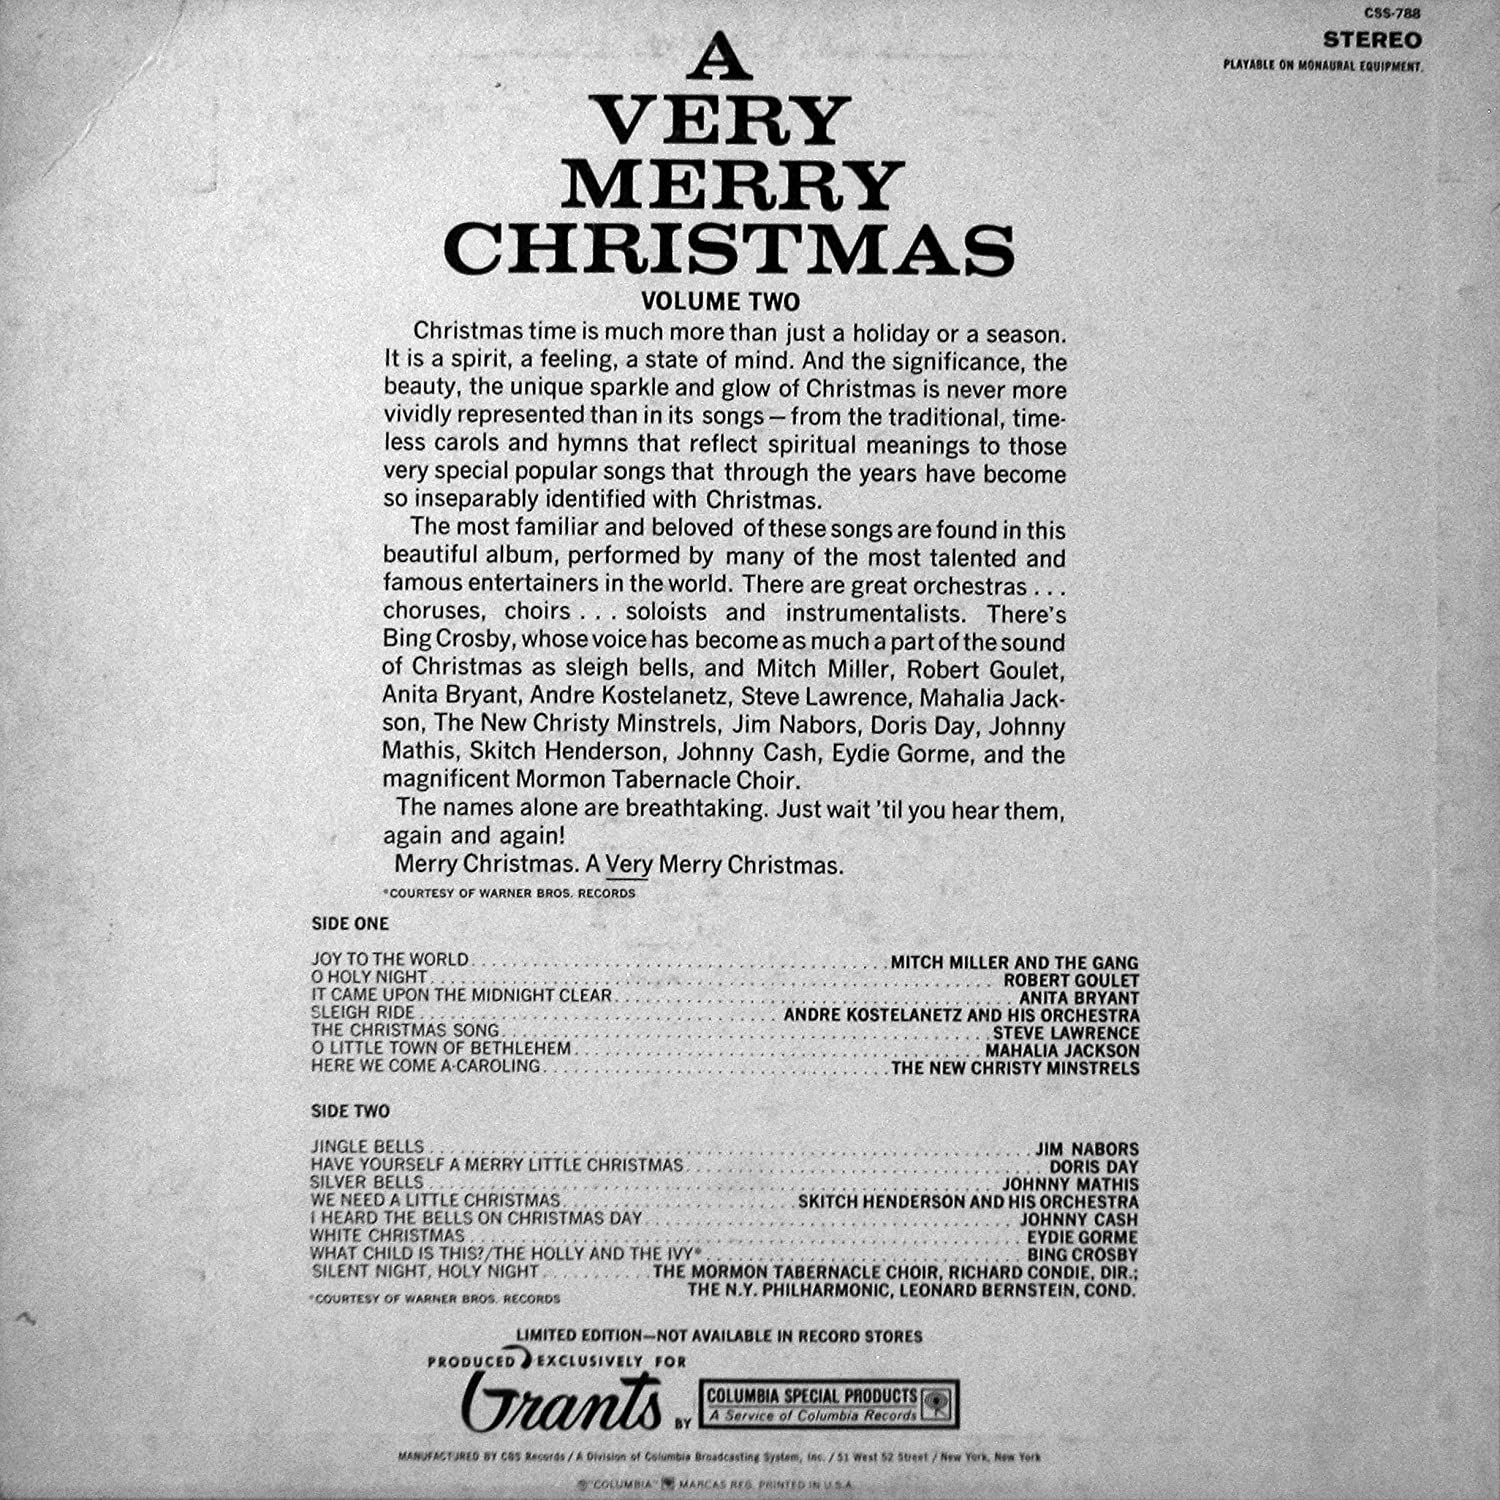 Columbia Special Products - A Very Merry Christmas - Amazon.com Music